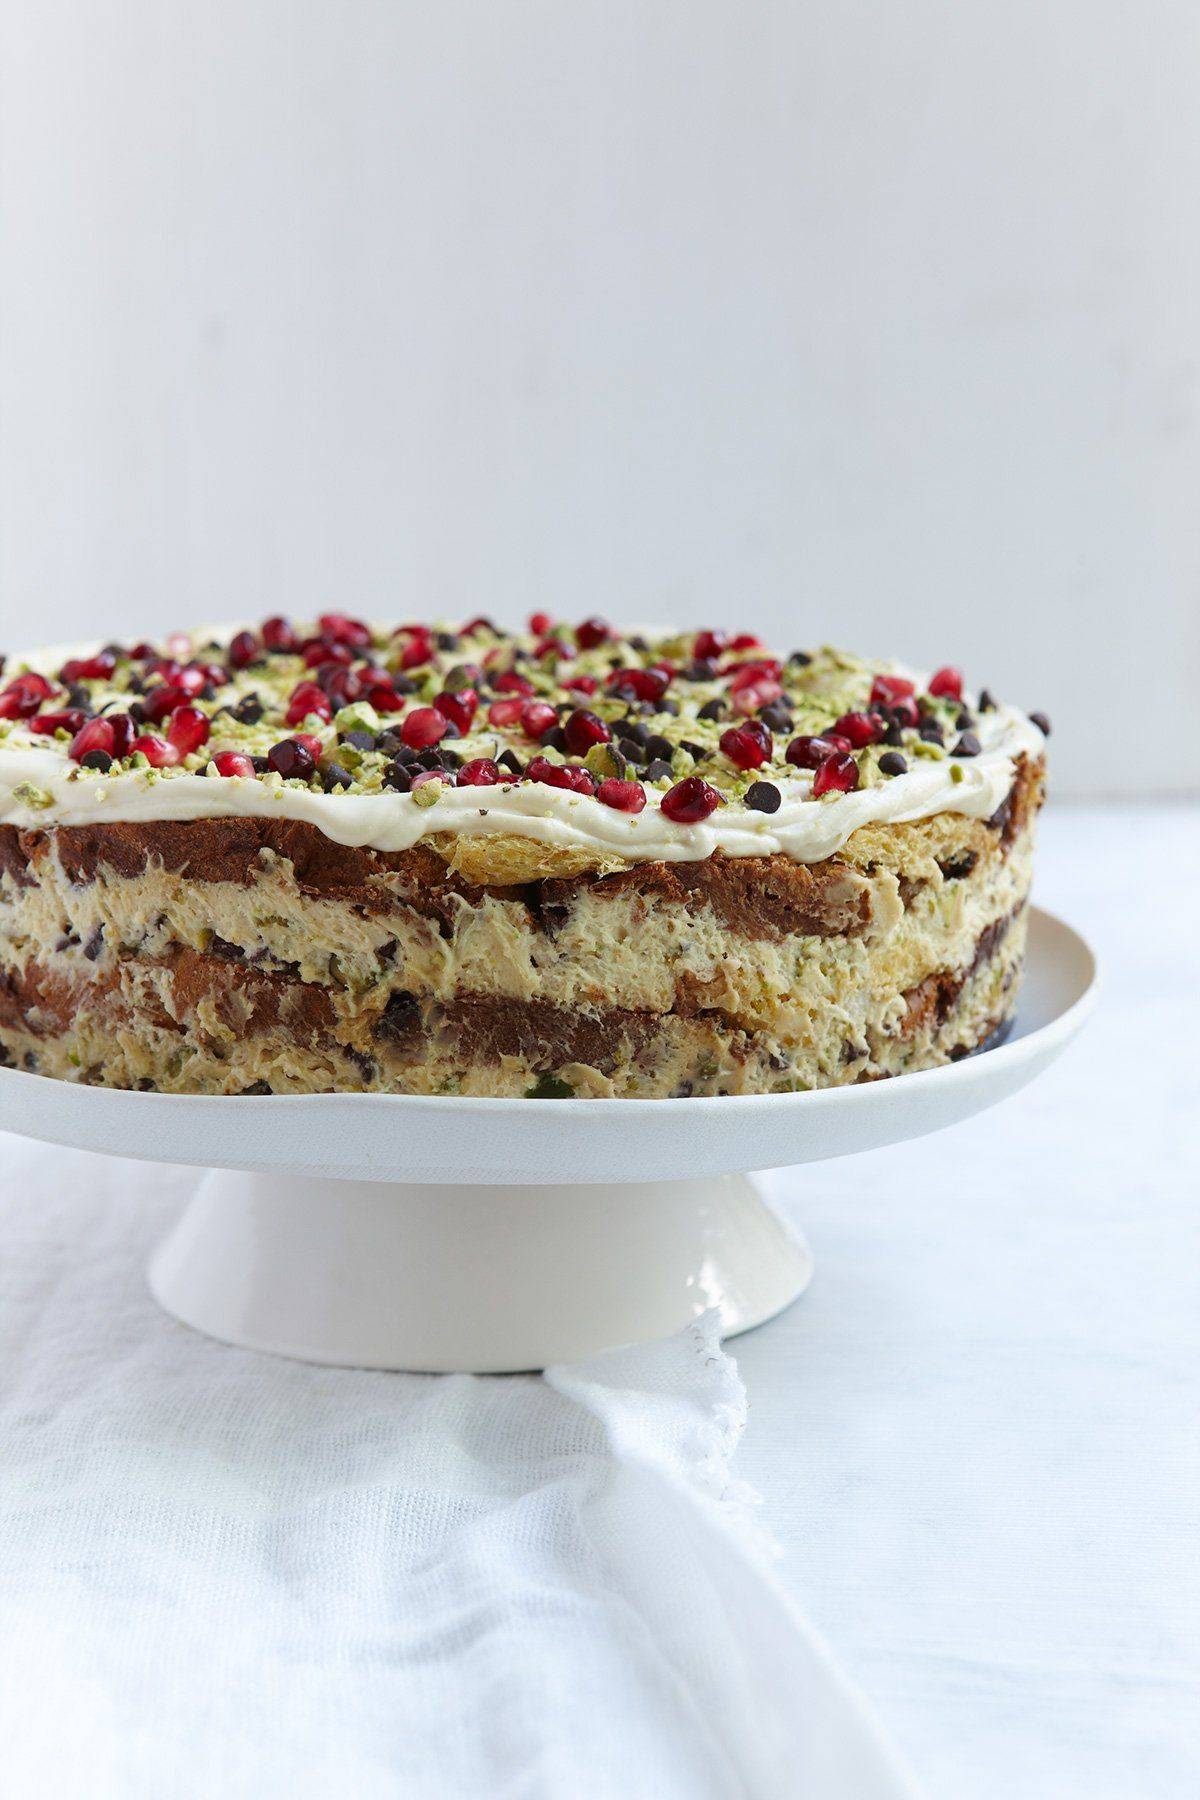 Italian Christmas Pudding Cake Recipe (With images